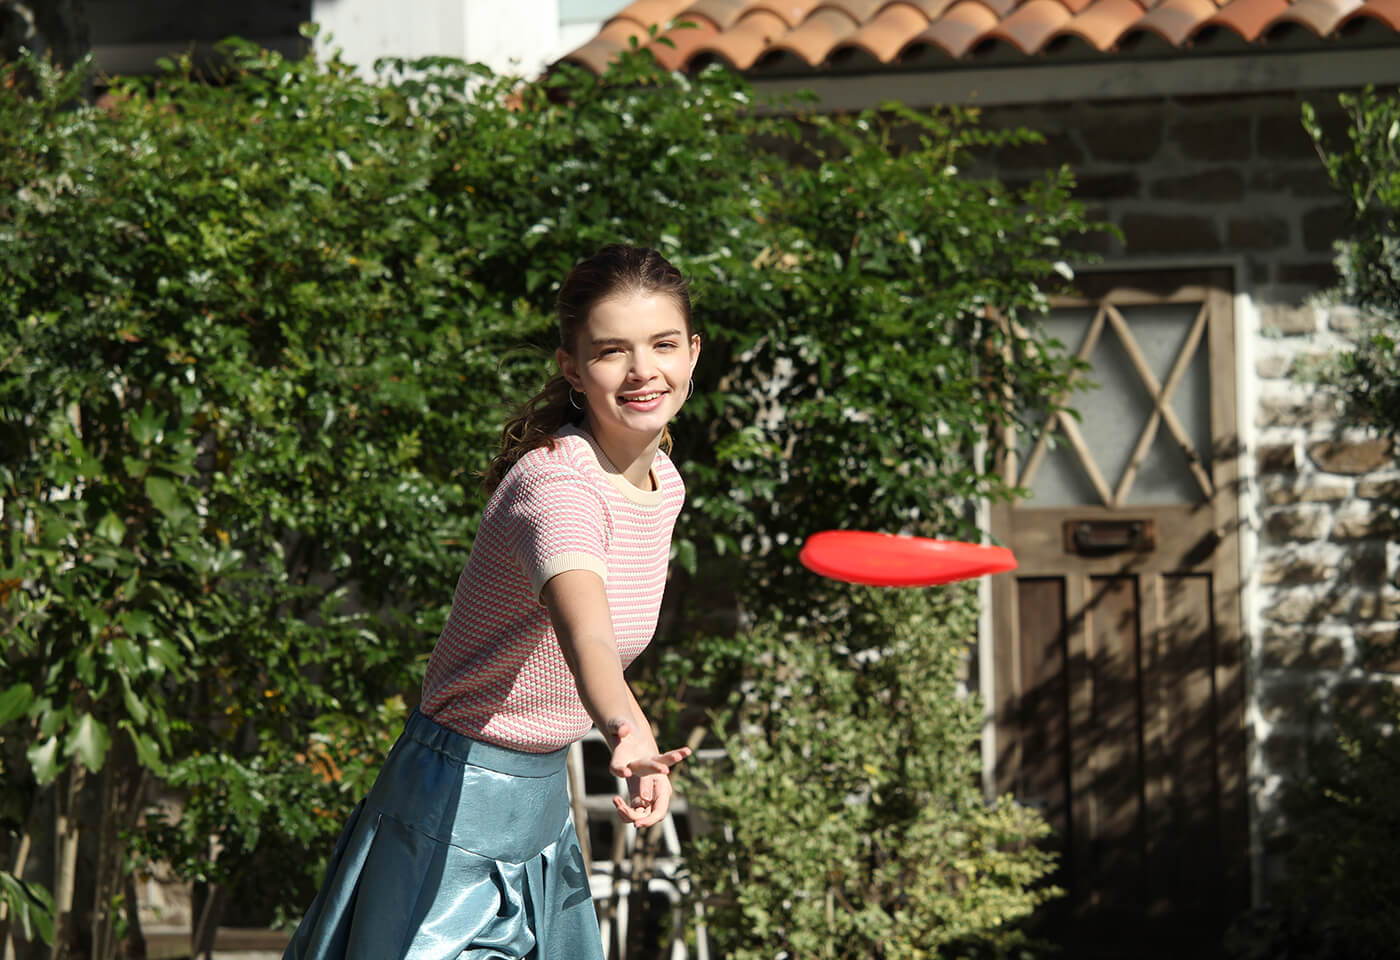 Portrait image of girl playing frisbee taken with EOS 3000D